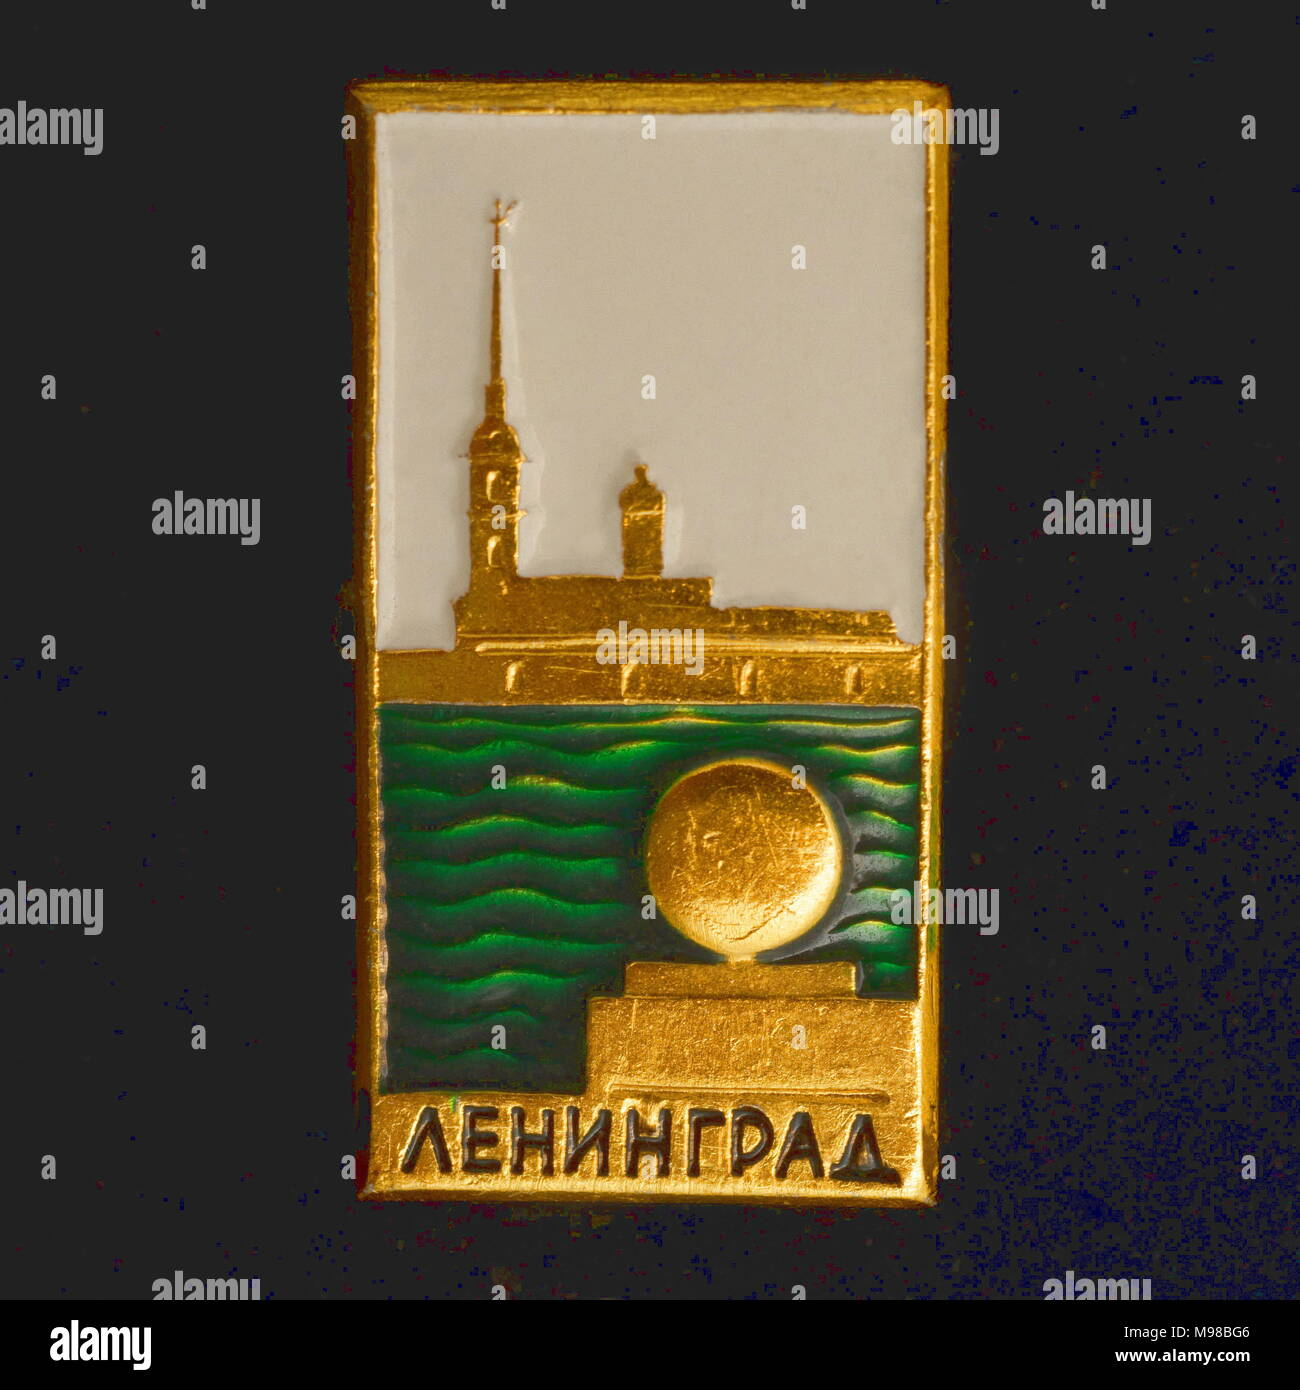 Soviet badge with the inscription Leningrad Peter and Paul Fortress Neva River - Stock Image